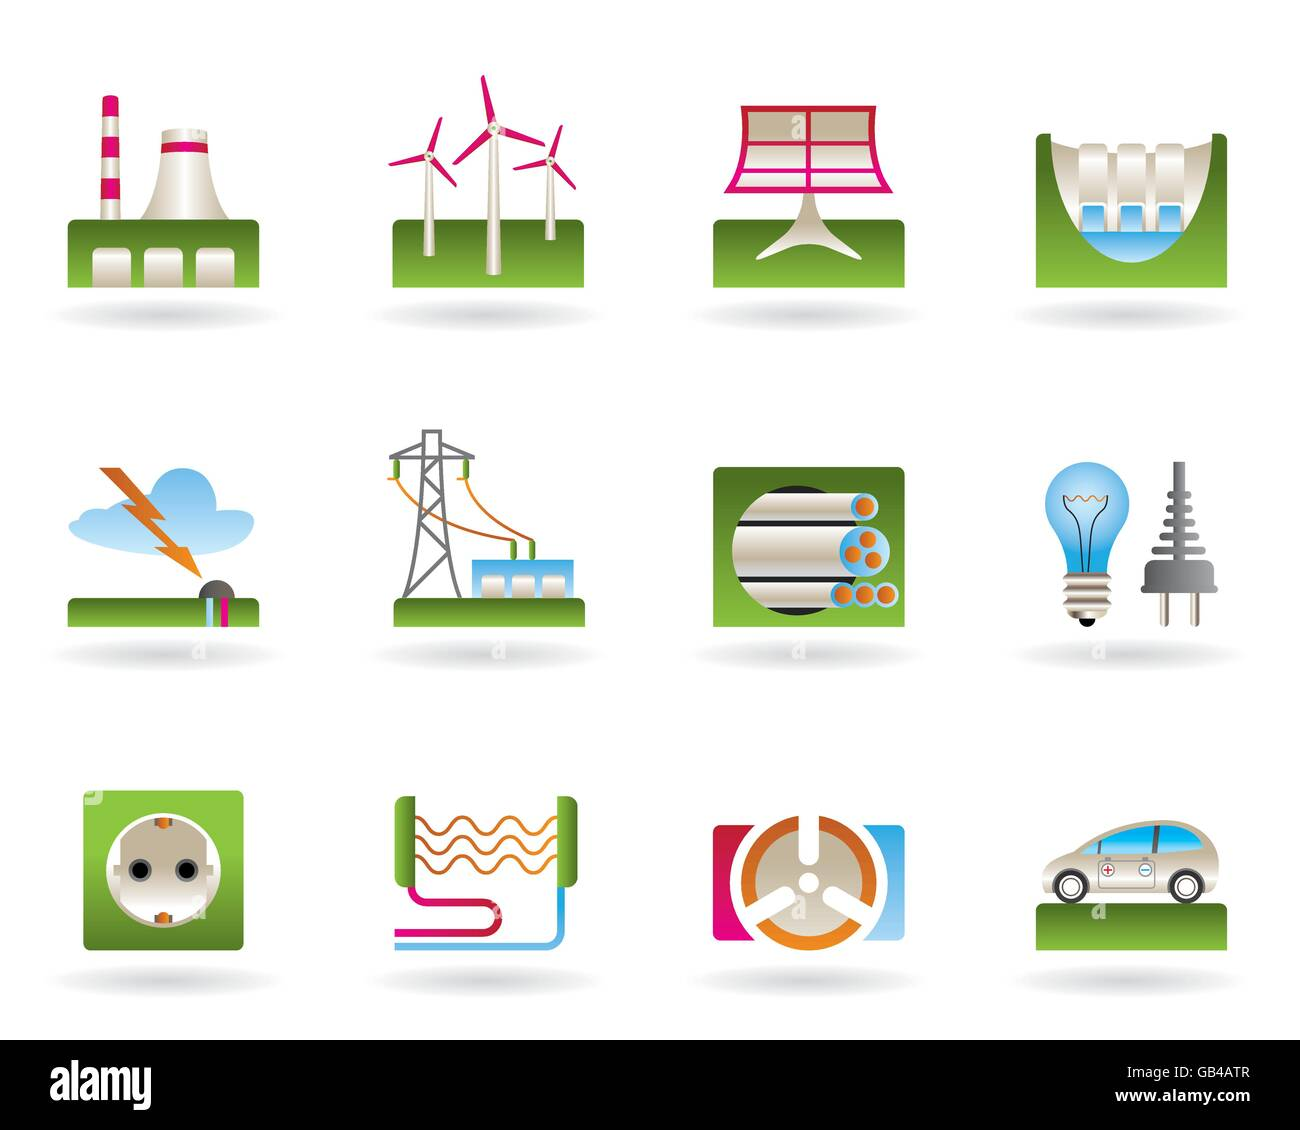 Power plants, electricity grids and electricity consumers - vector illustration Stock Vector